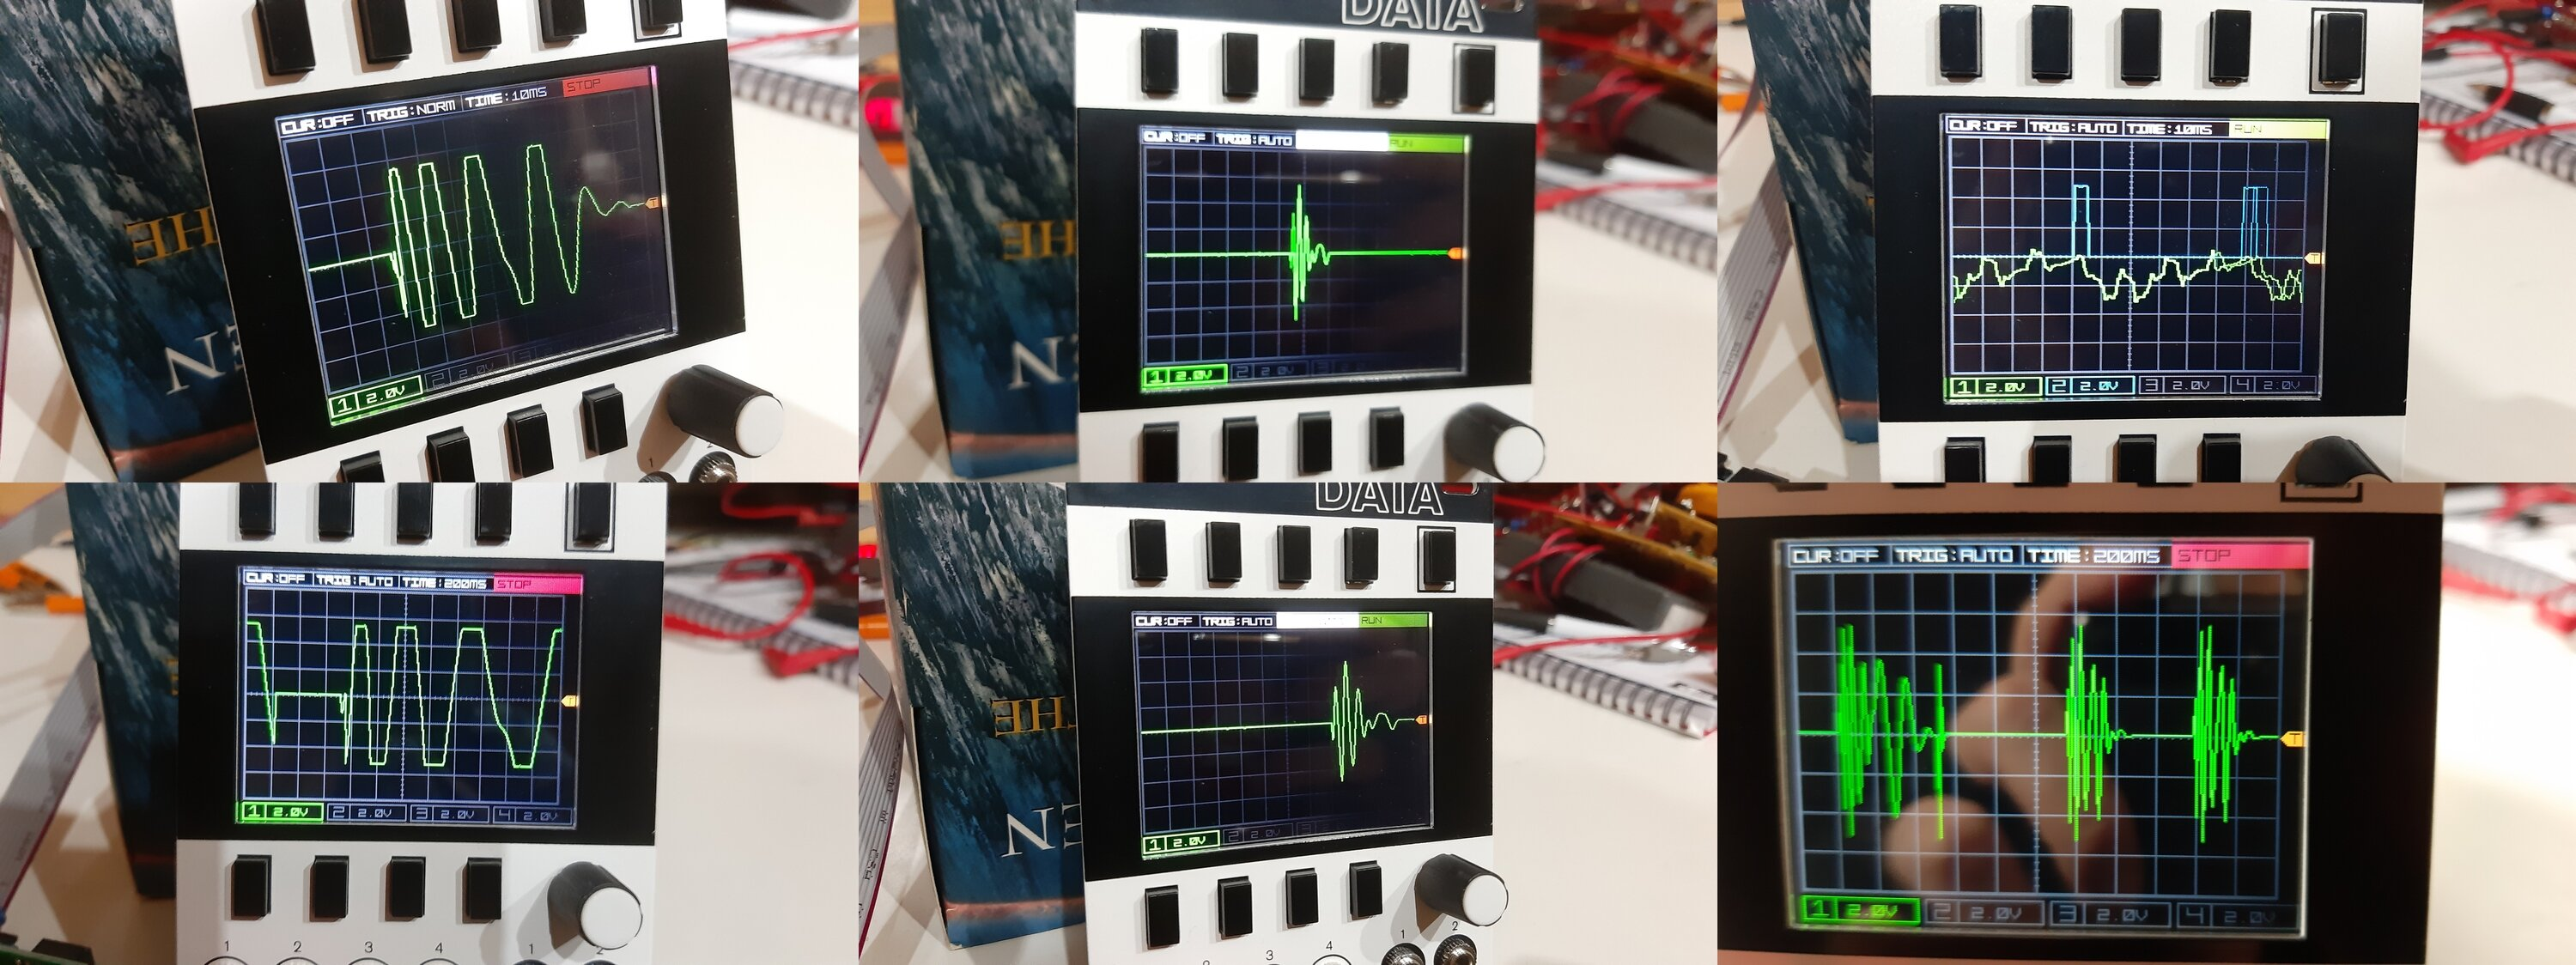 I took dozens of photos of my oscilloscope to try to detect a pattern in the waveform timings.